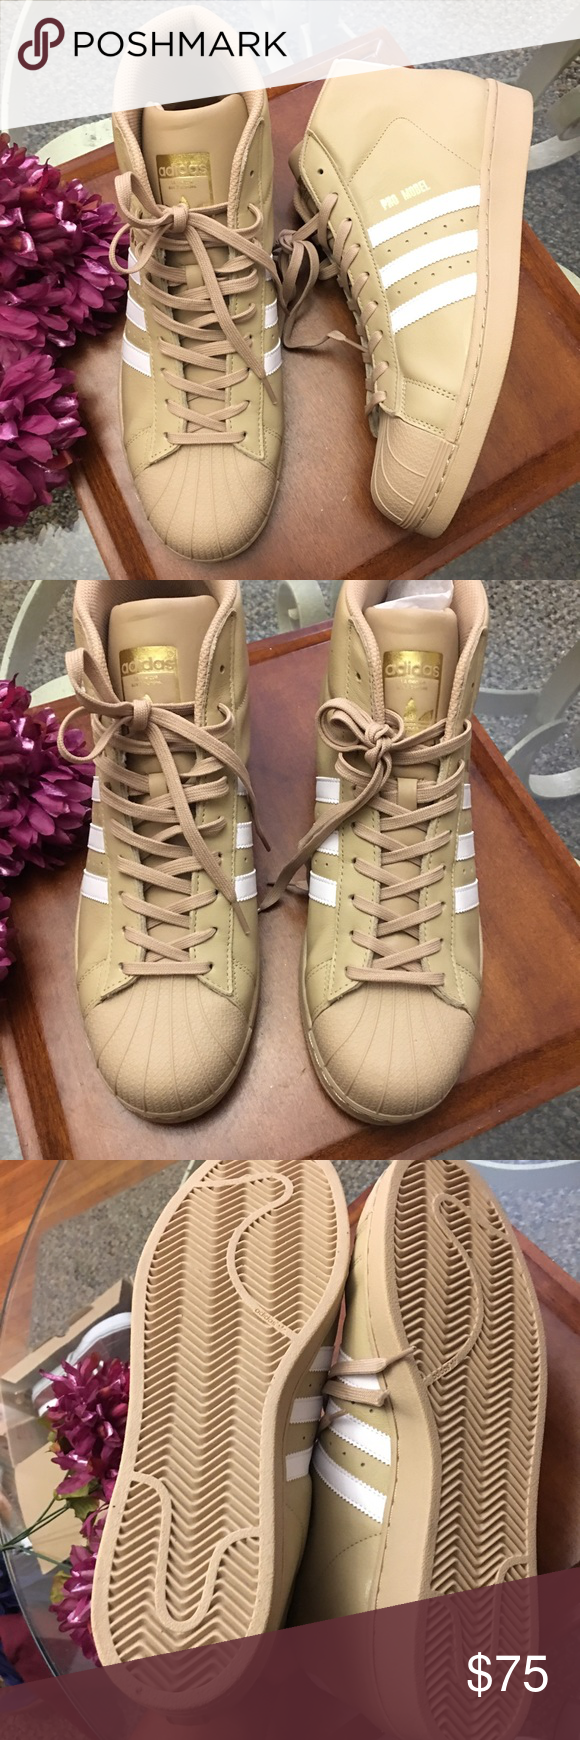 New adidas pro model the original sneakers NWT (With images